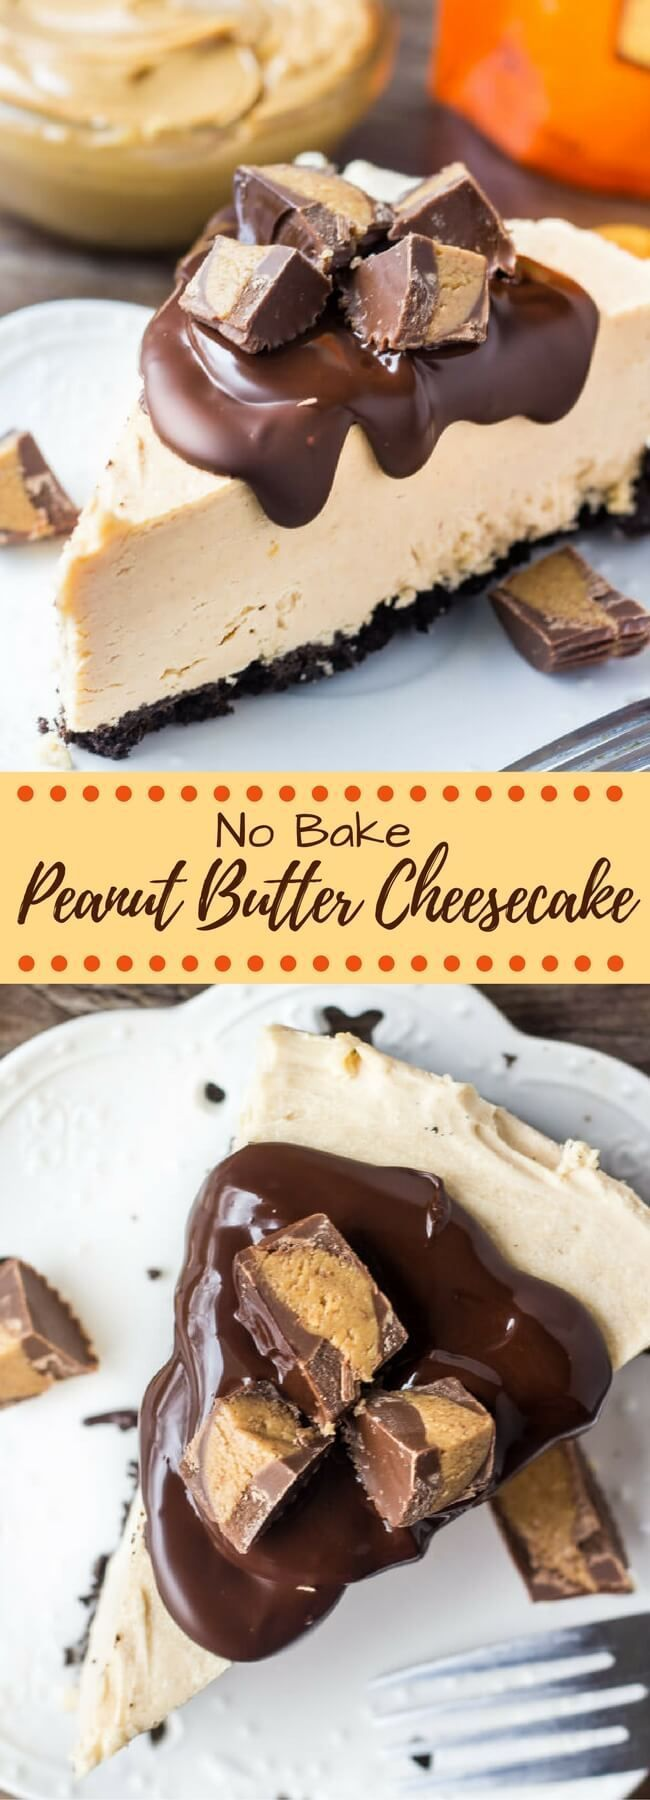 This no bake peanut butter cheesecake has an Oreo cookie crust, creamy peanut butter flavor, and Reese's peanut butter cups. So easy and only 15 minutes to make!